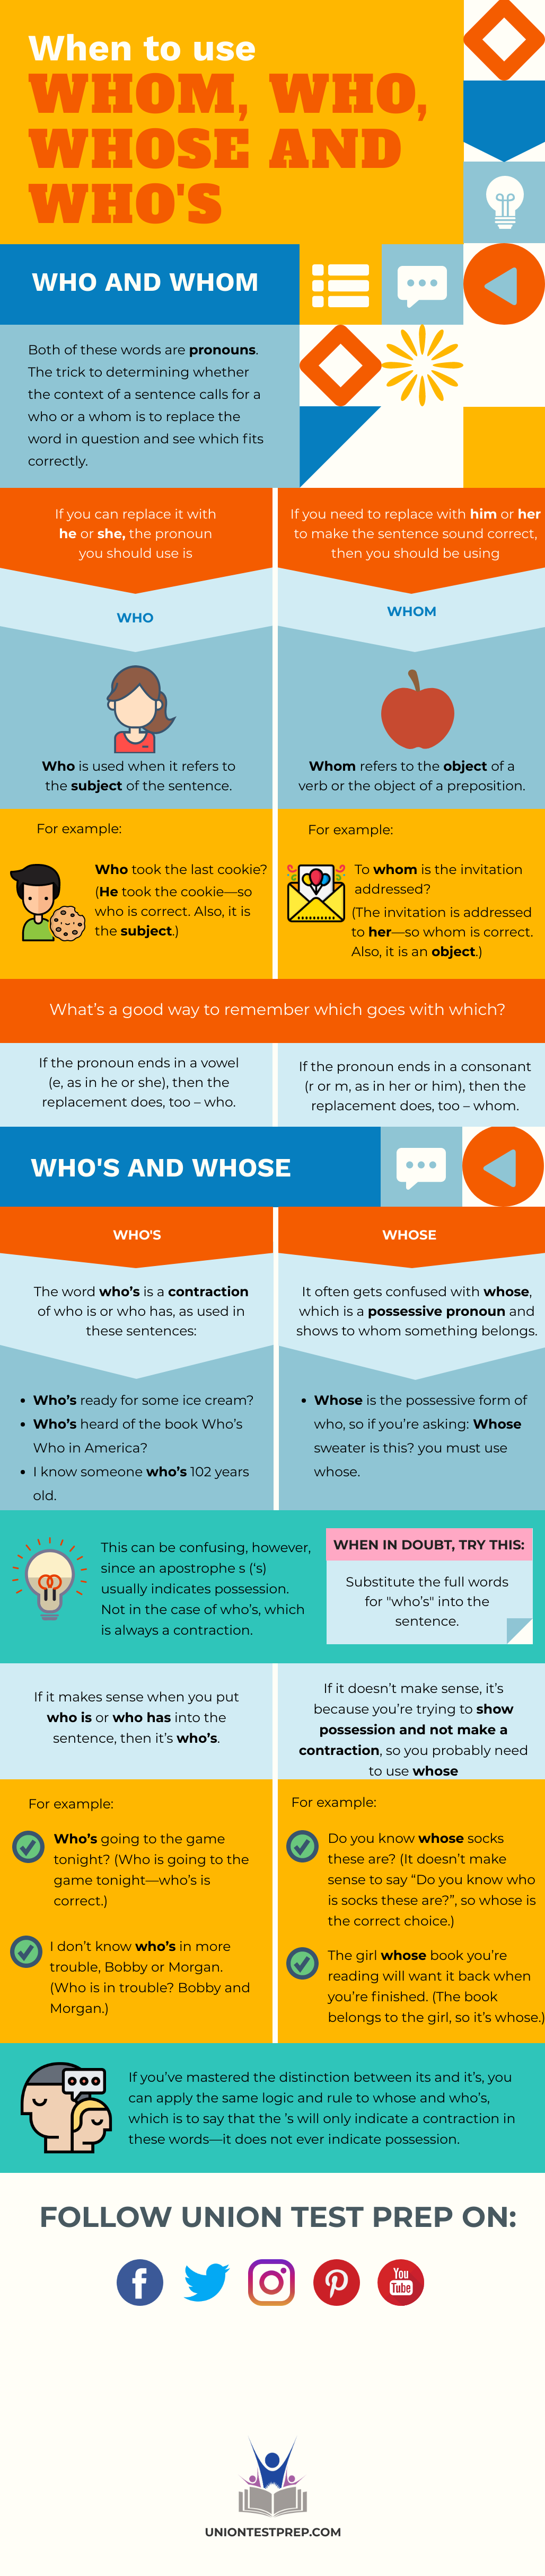 When to Use Whom, Who, Whose, and Who's